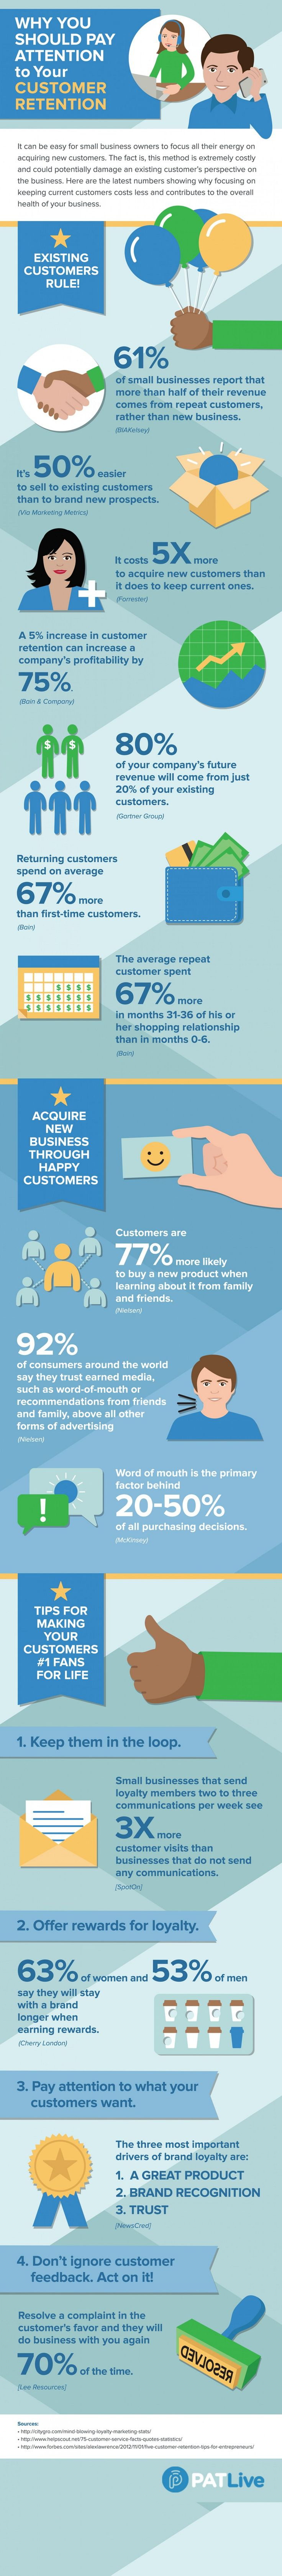 Why you Should Pay Attention to your Customer Retention #Infographic #Business